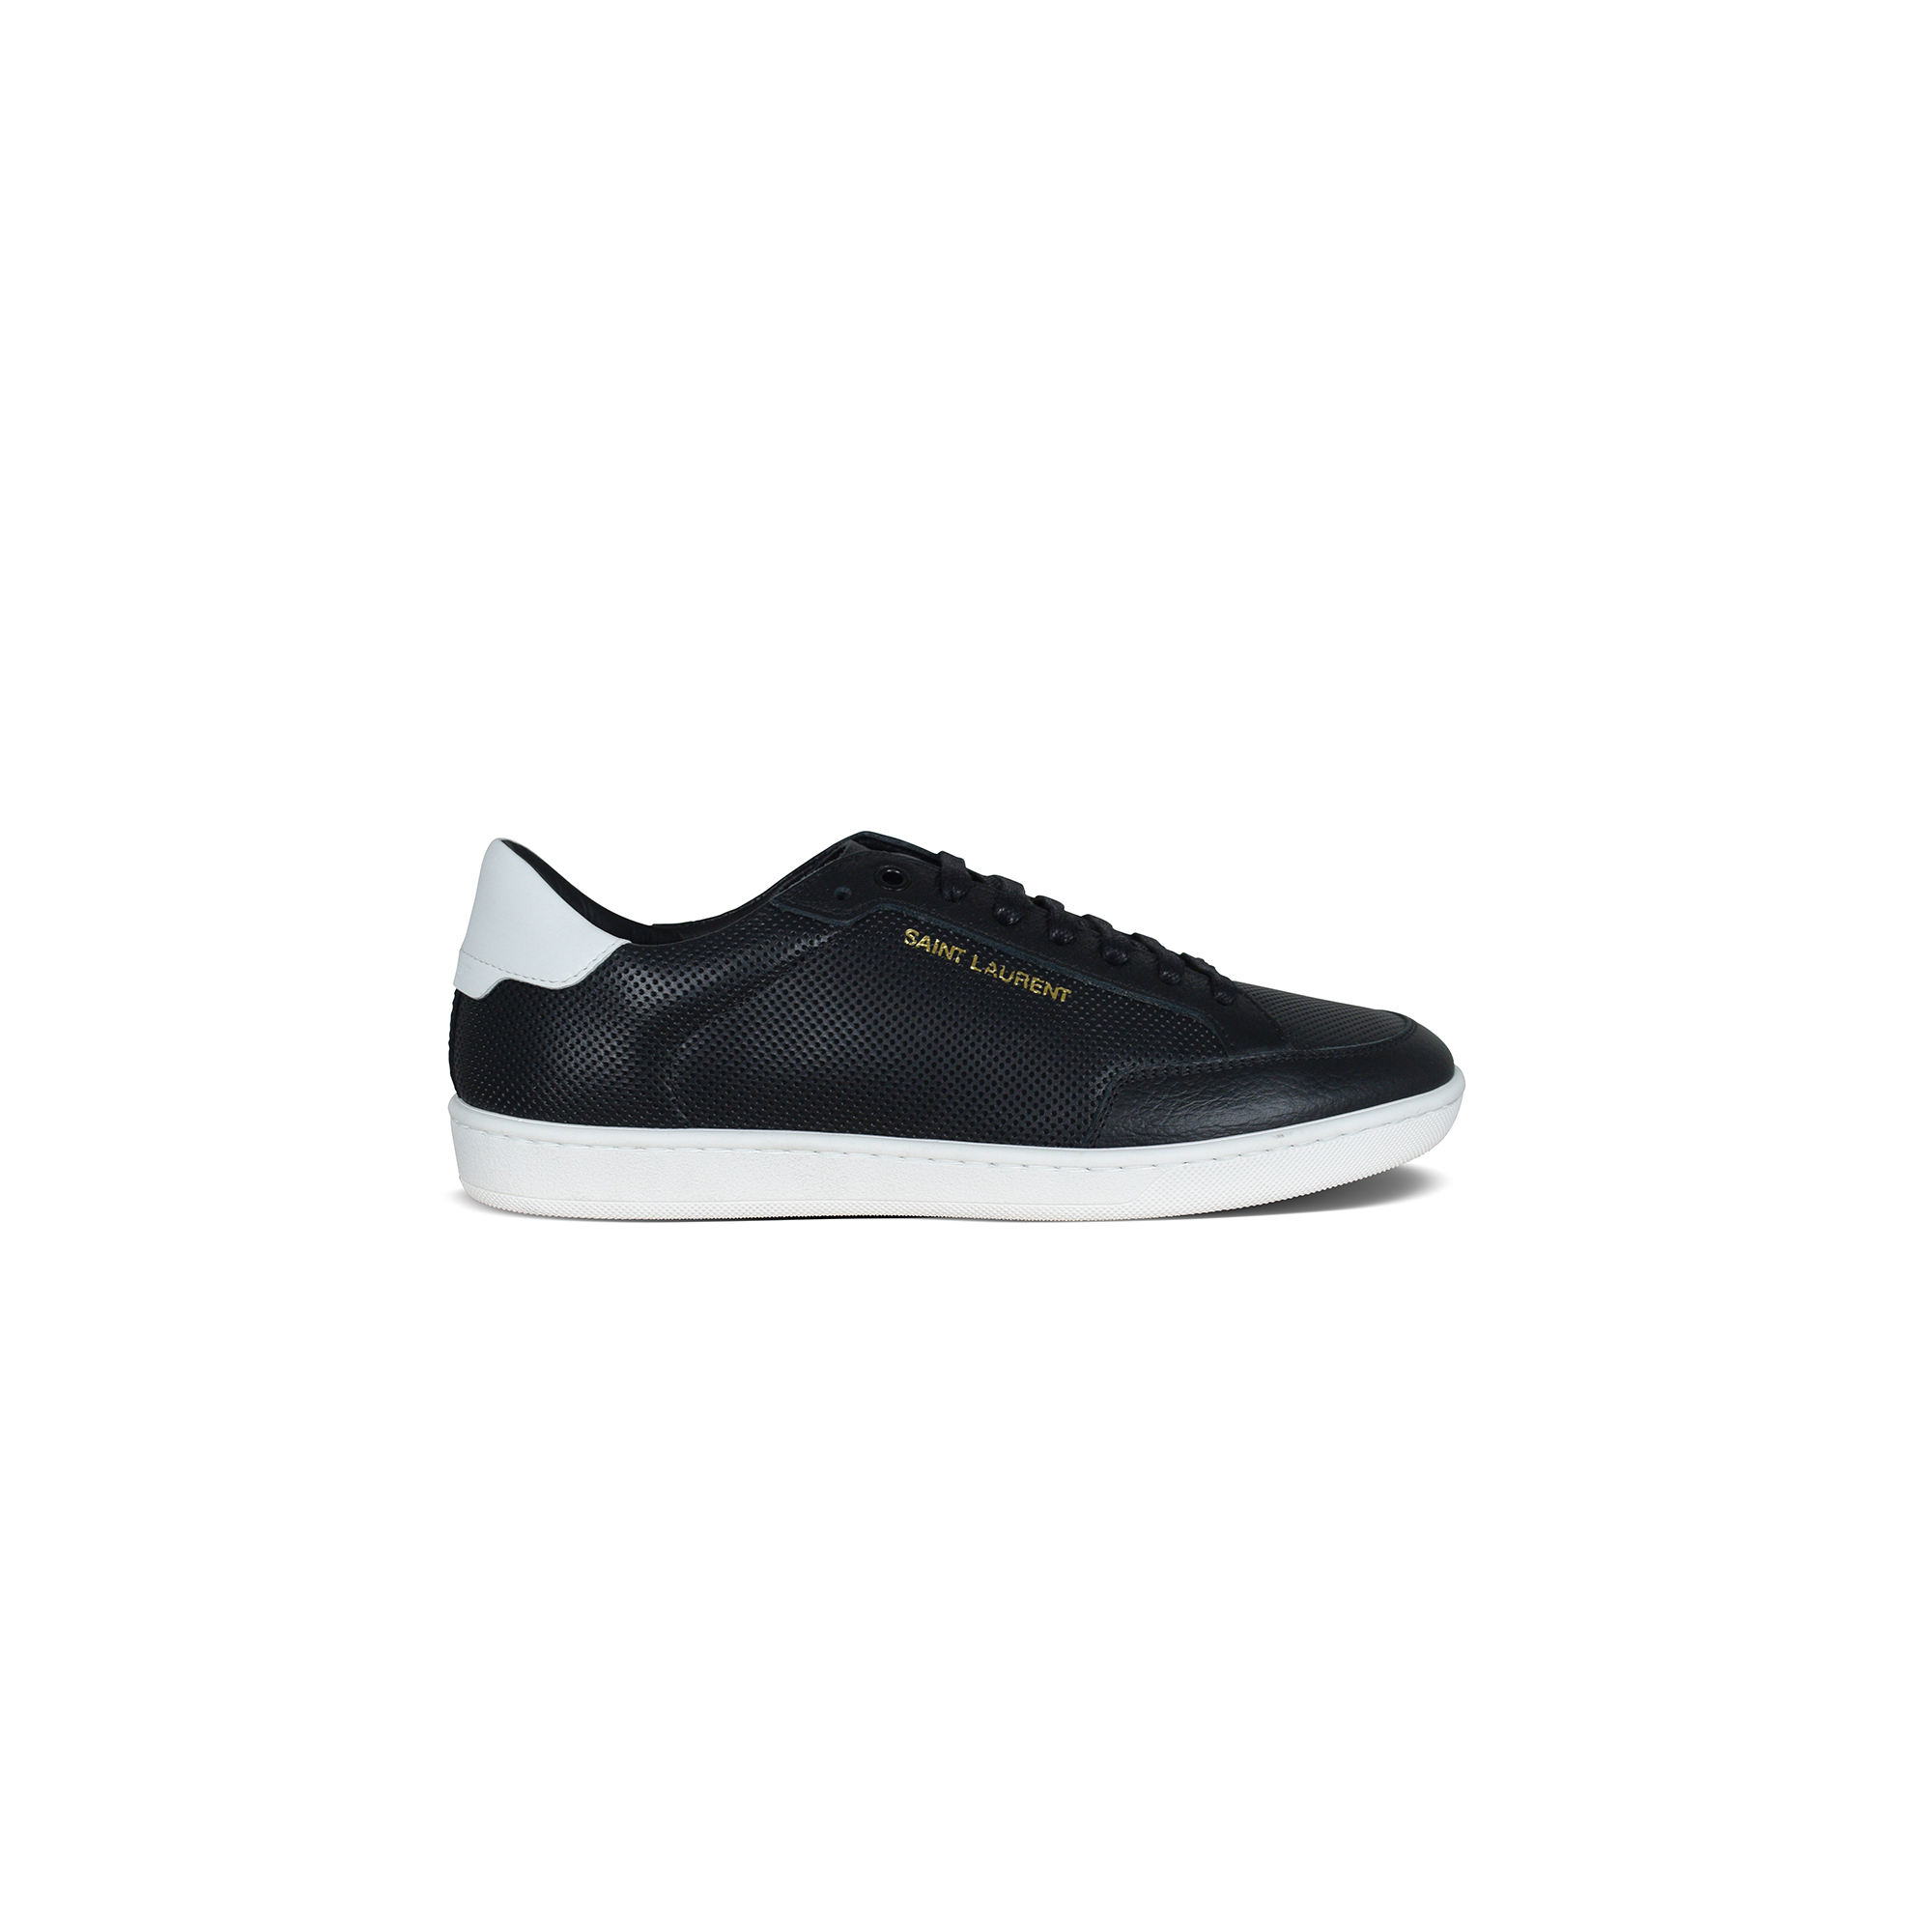 Saint Laurent Court Classic SL/06 sneakers in black perforated leather.